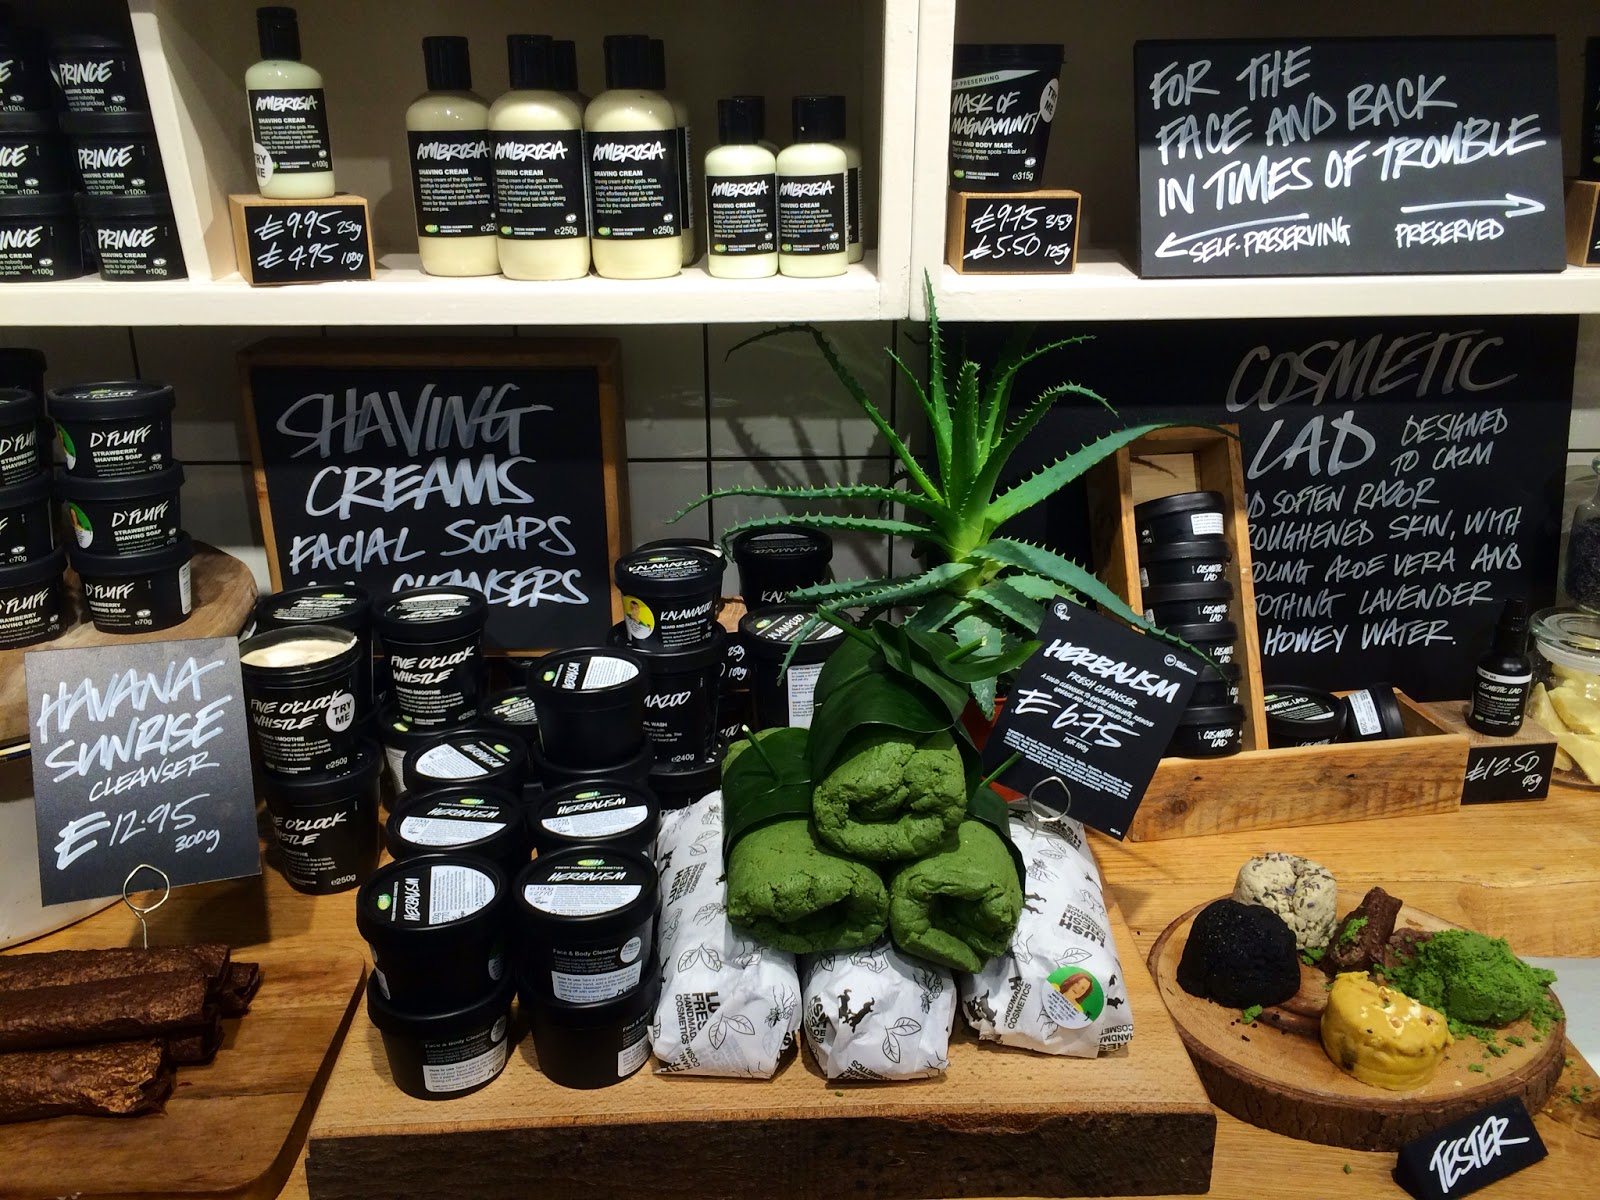 New Lush Store on Oxford Street - Bearded Couture